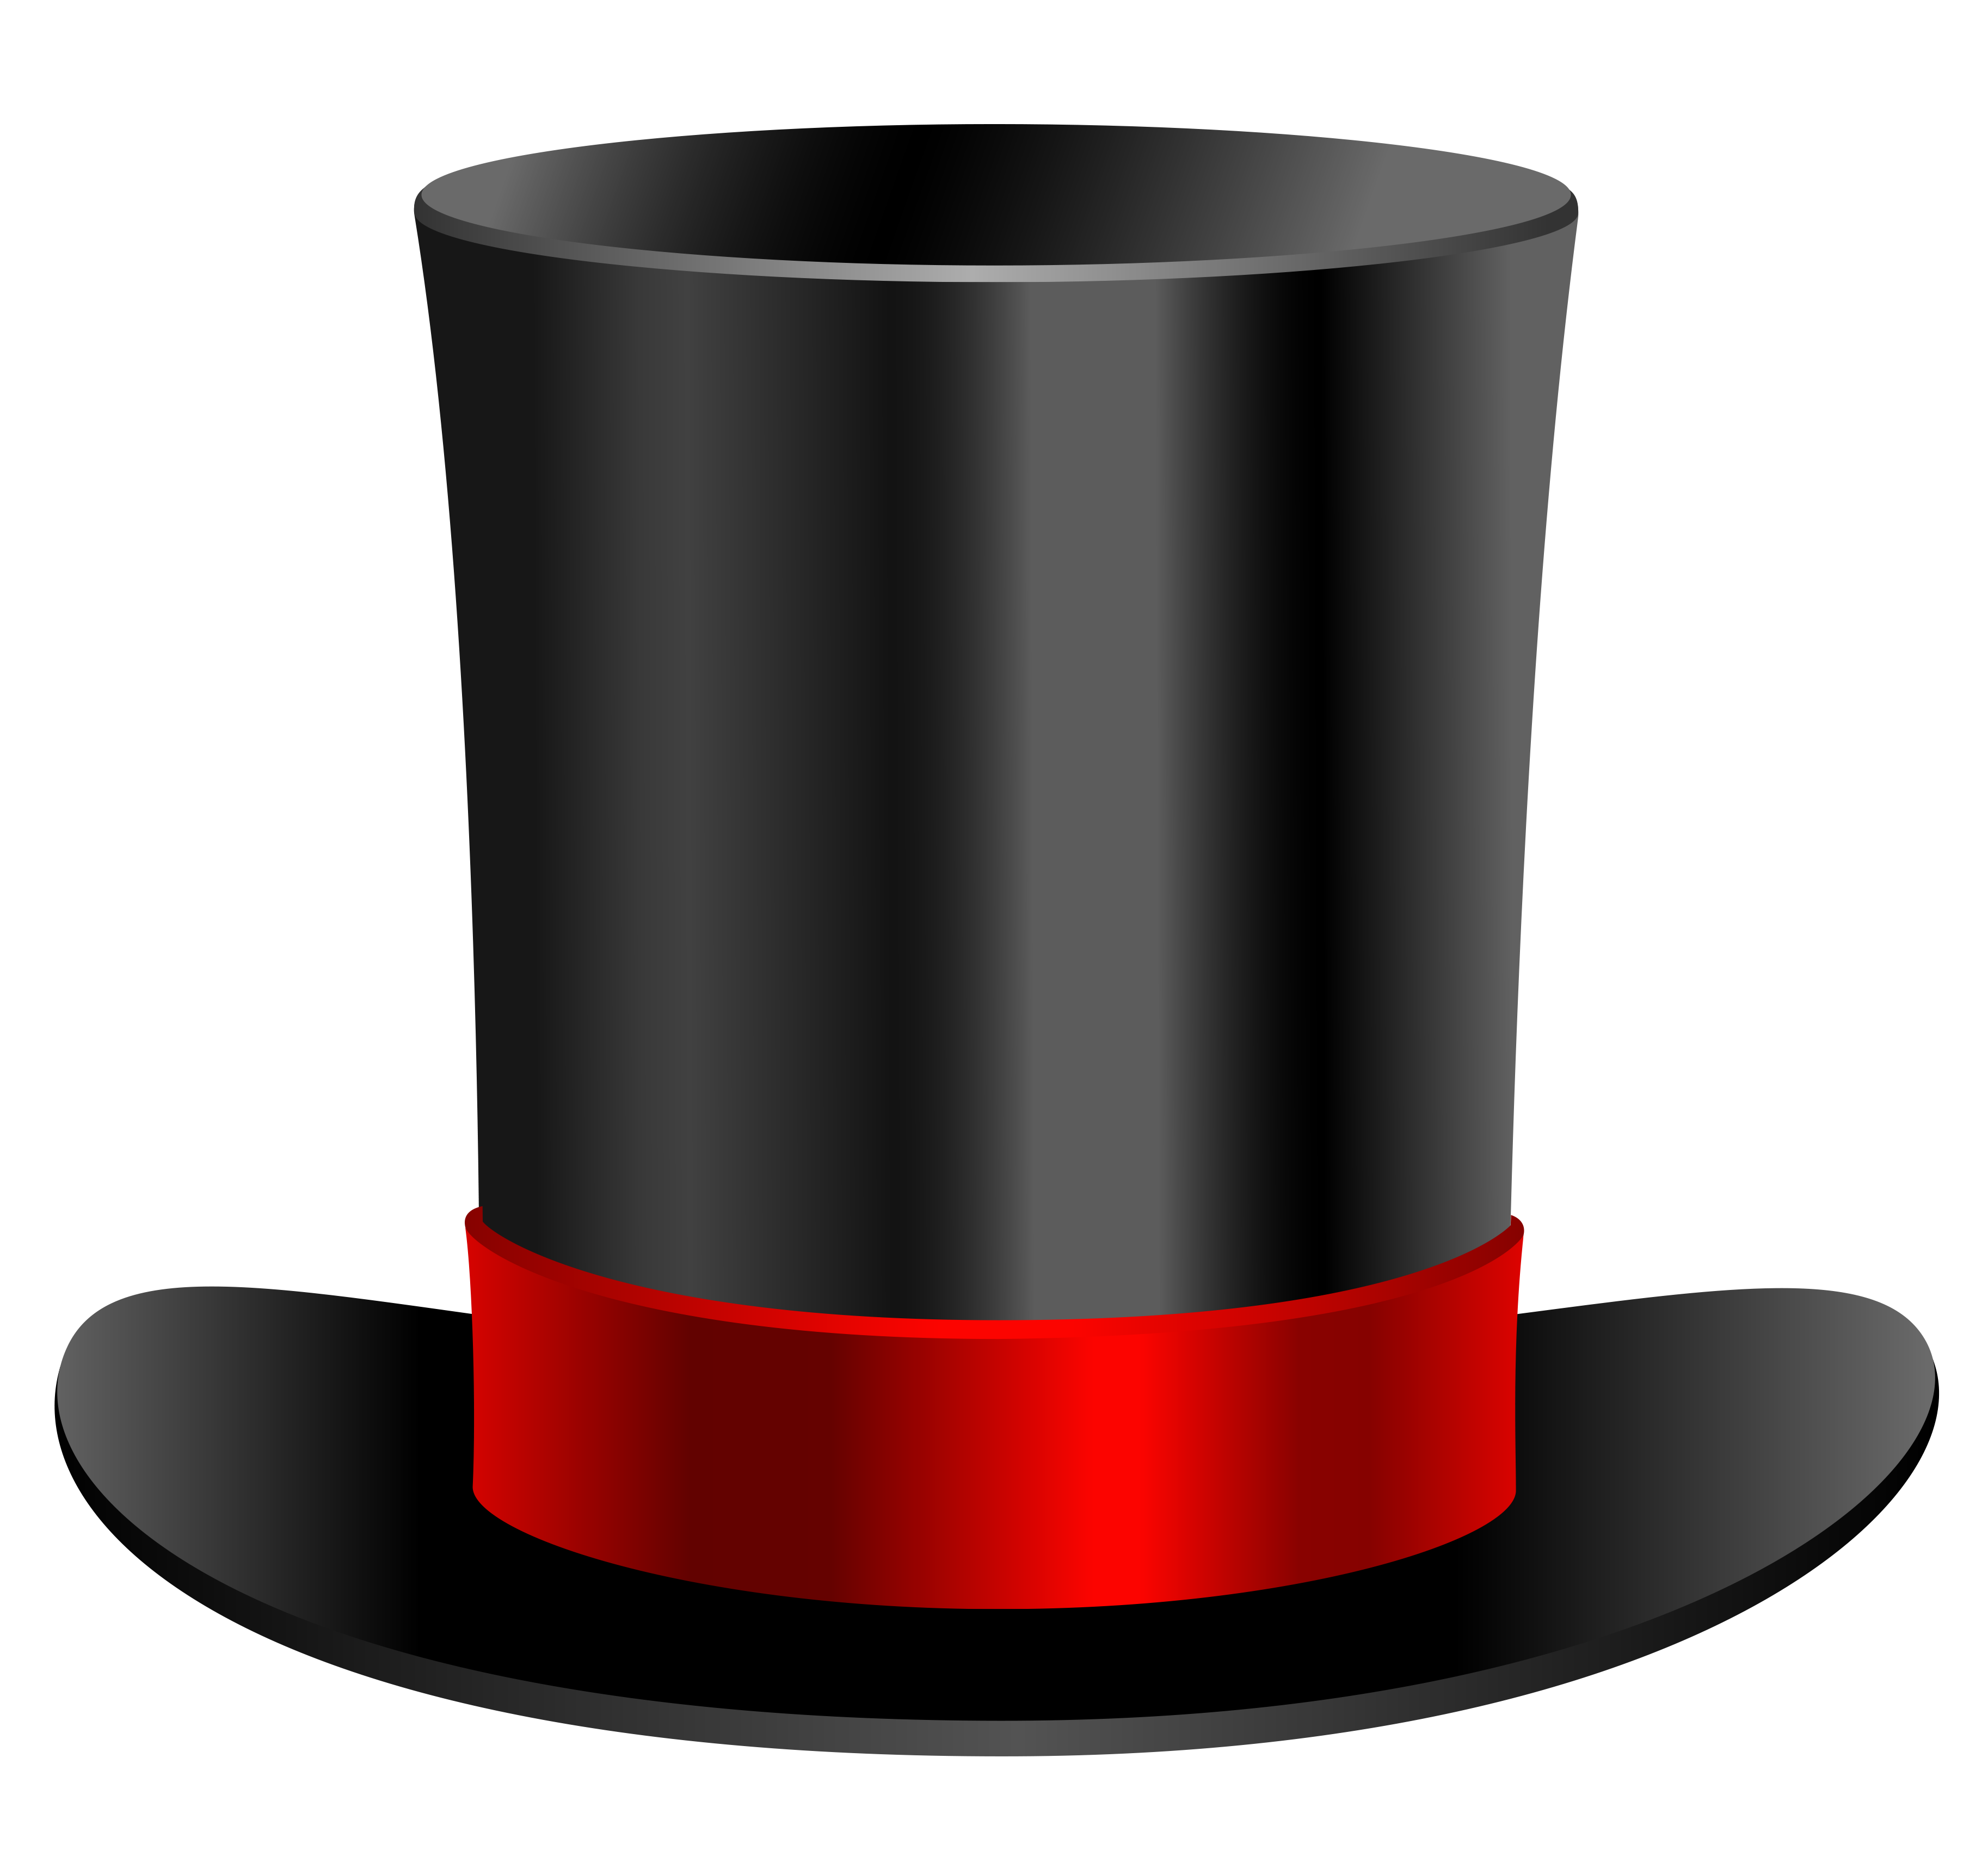 top hat clipart upside down